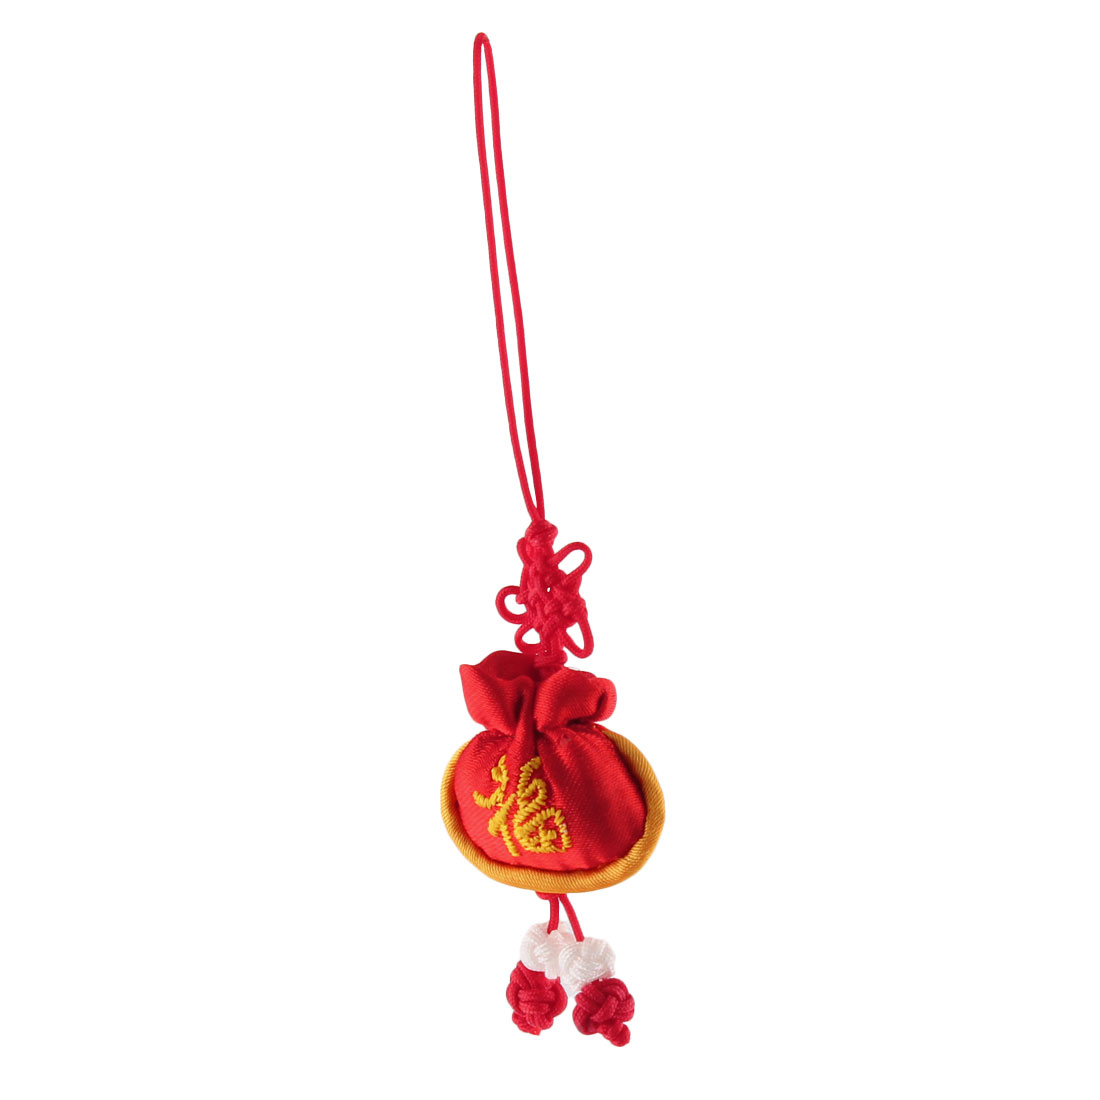 Household Mini Chinese Embroidery Luck Sachet Pendant Knot Hanging Decor Red